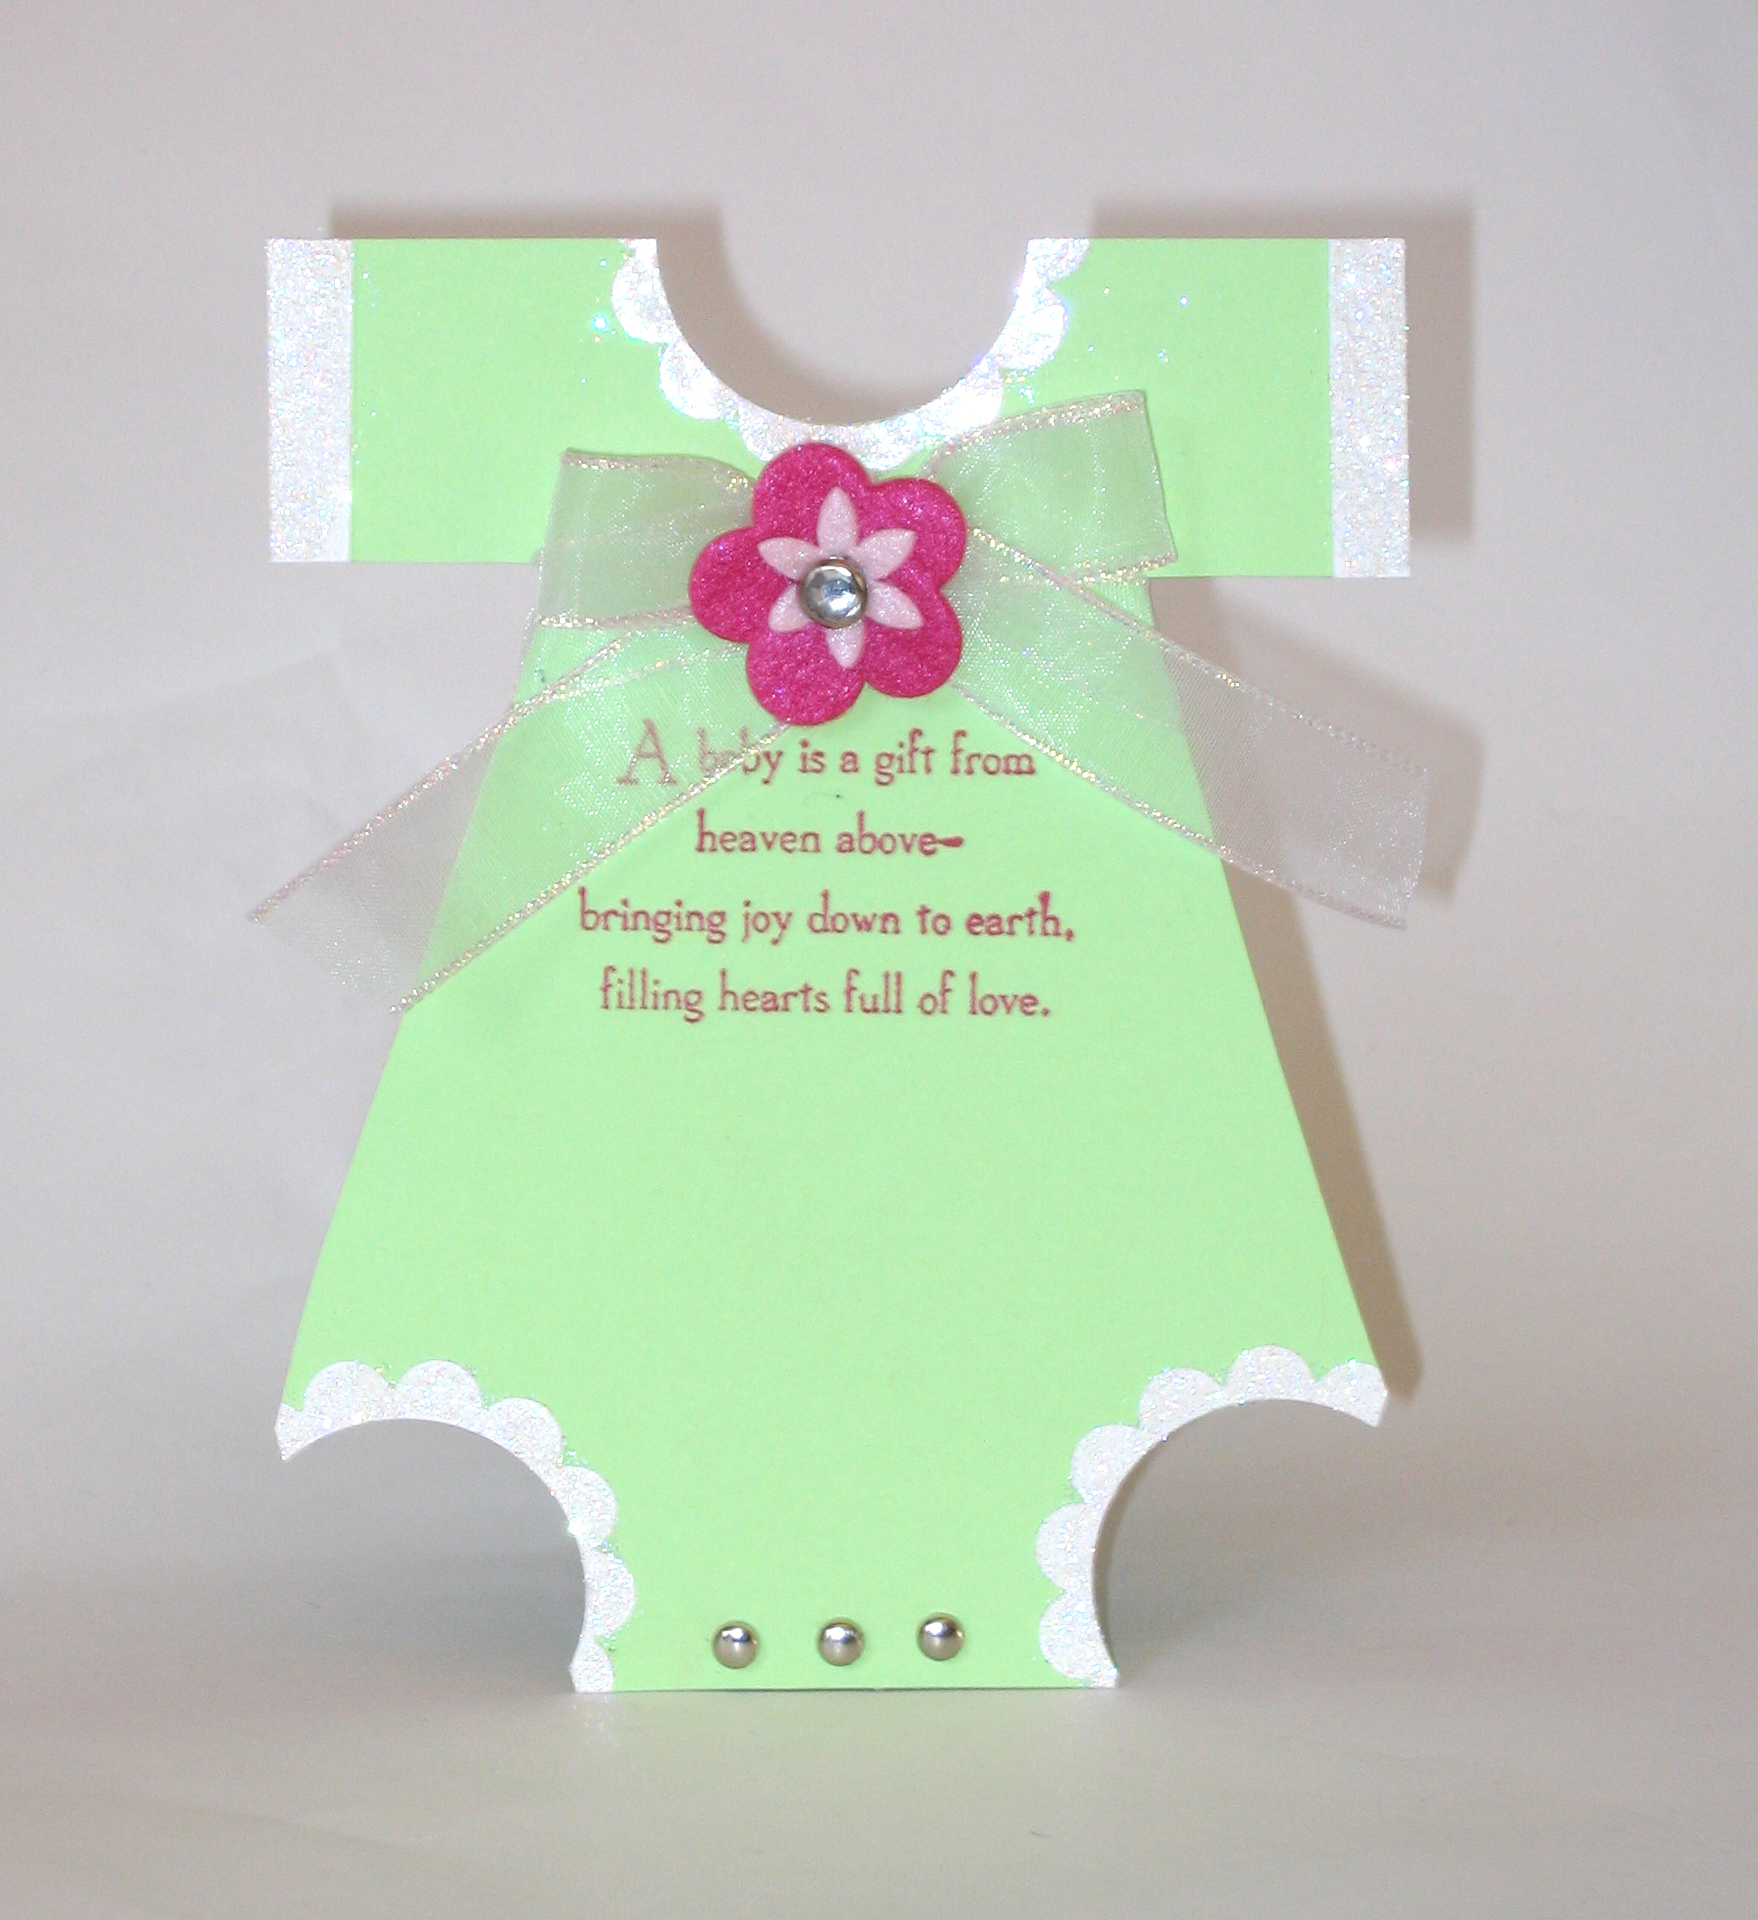 photo about Onesies Template Printable Free named Little one Onesie Present Template - Present Guidelines